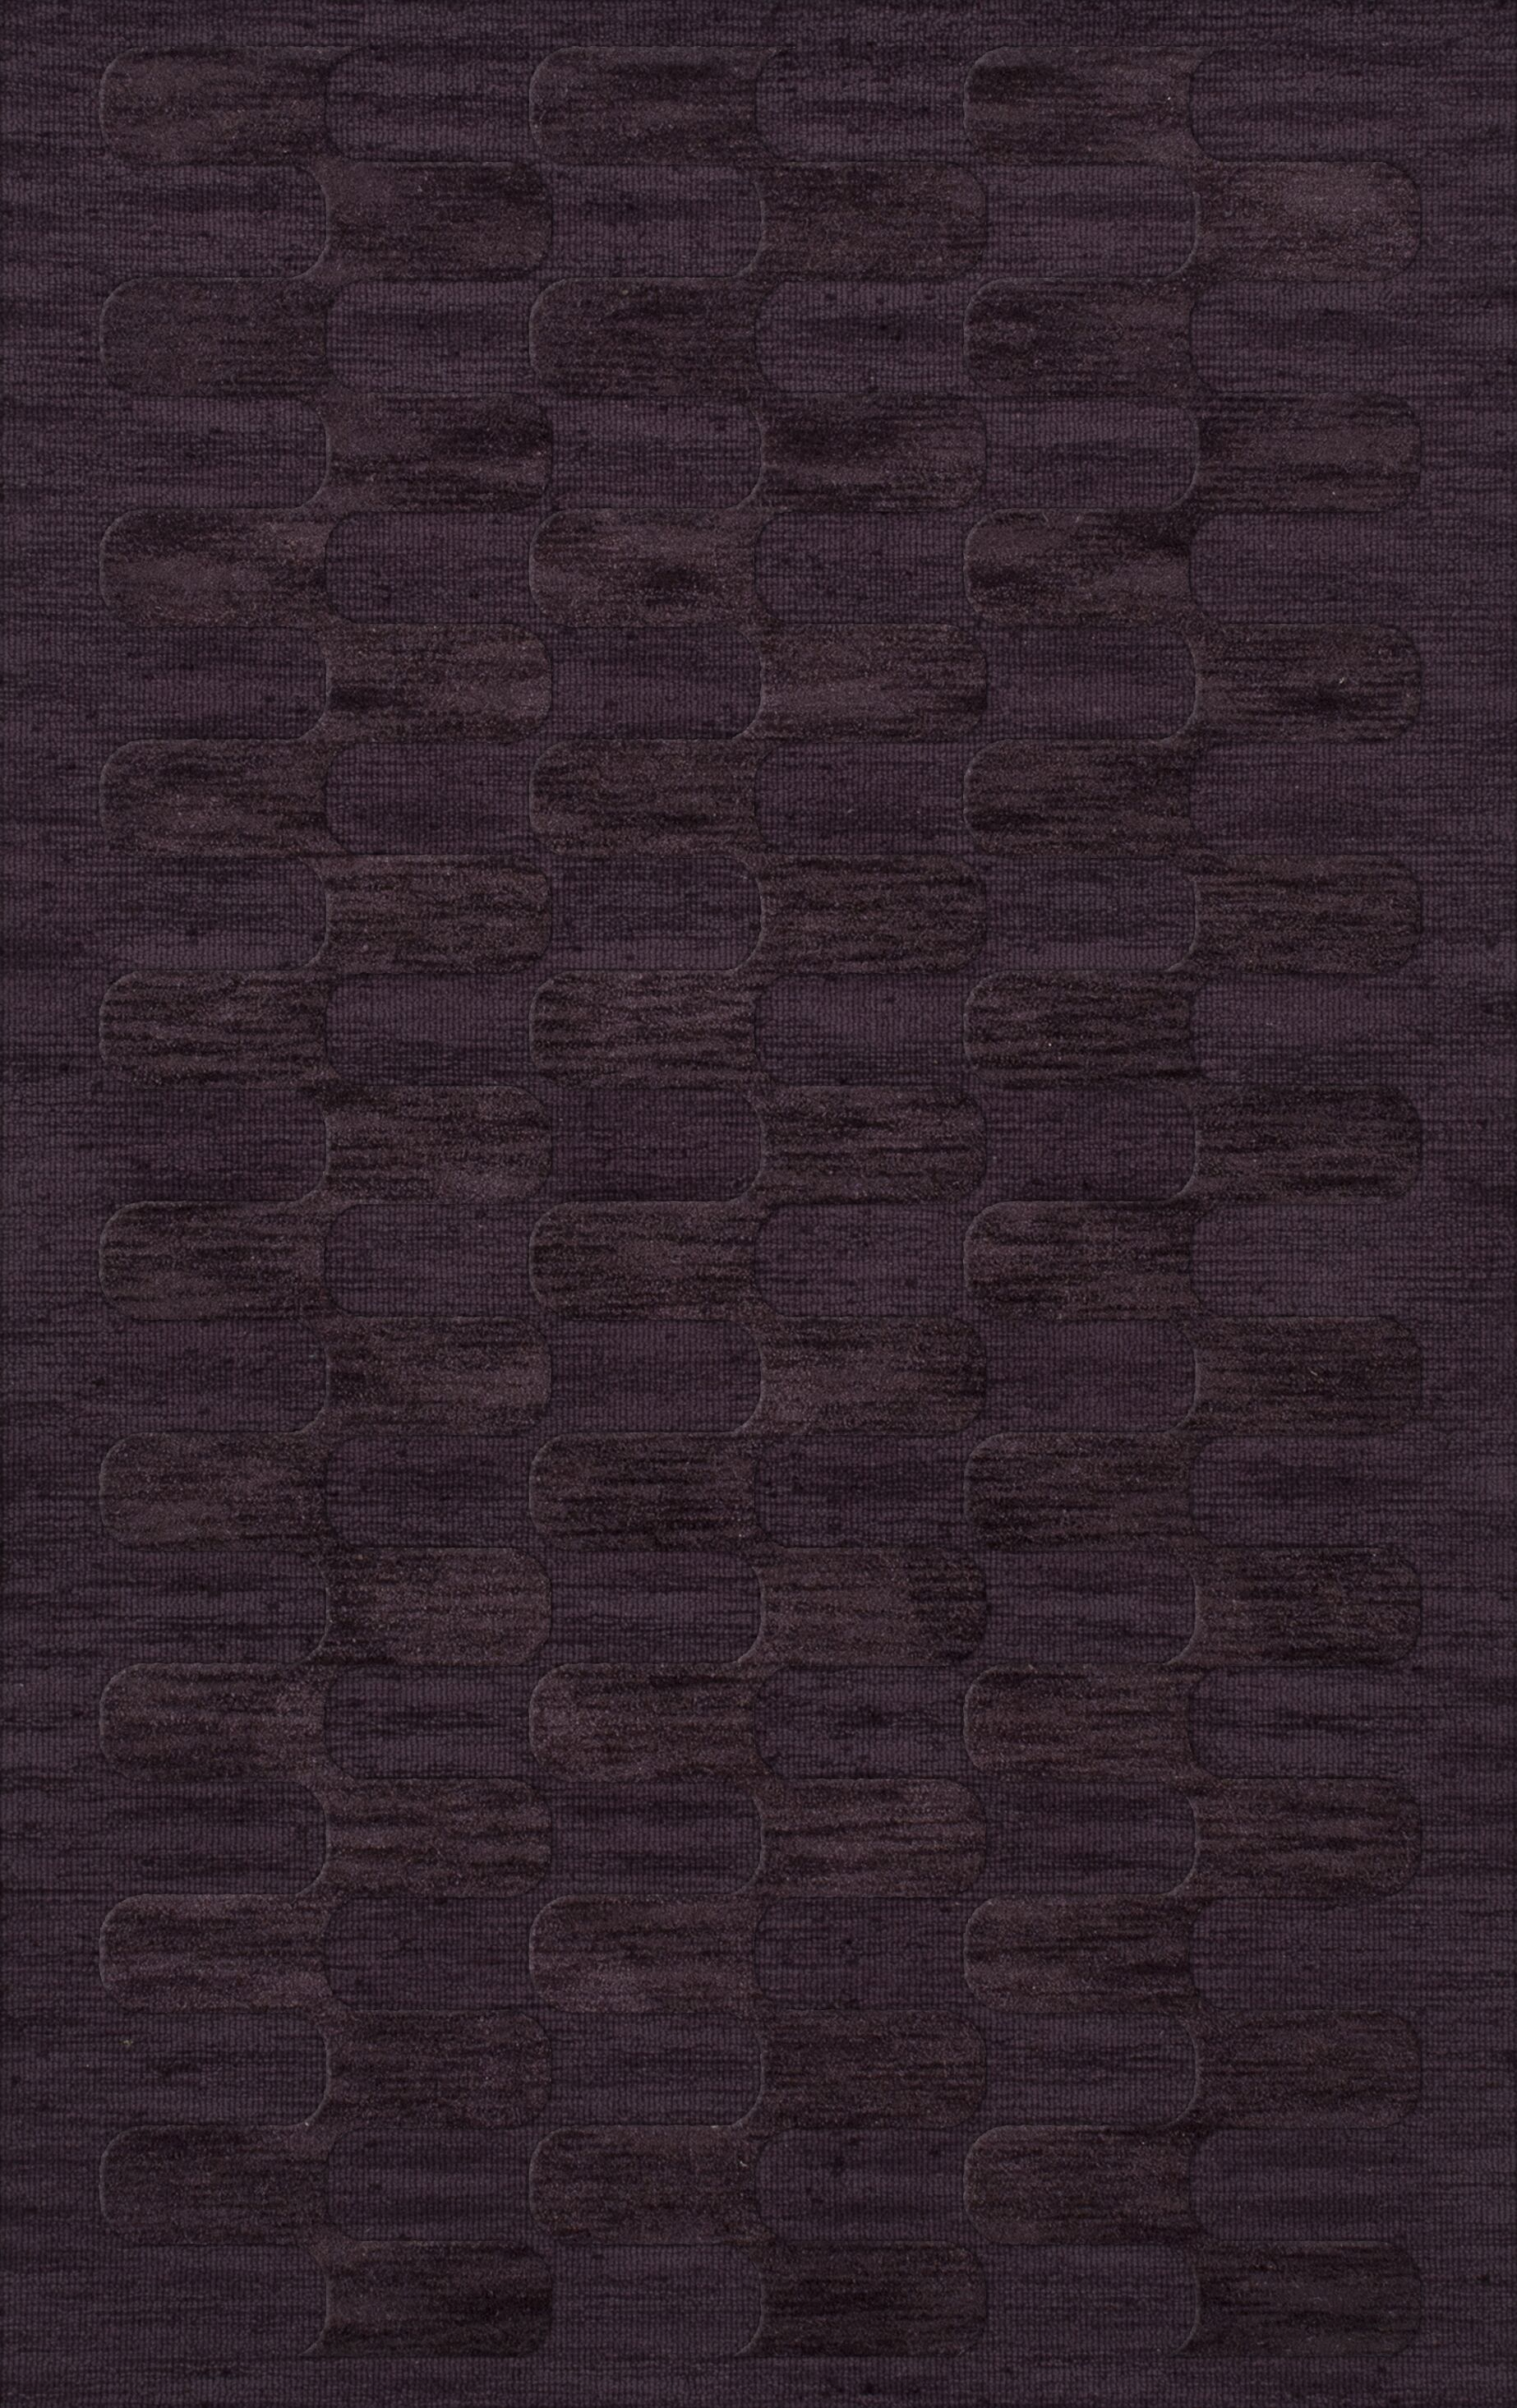 Dover Grape Ice Area Rug Rug Size: Rectangle 5' x 8'